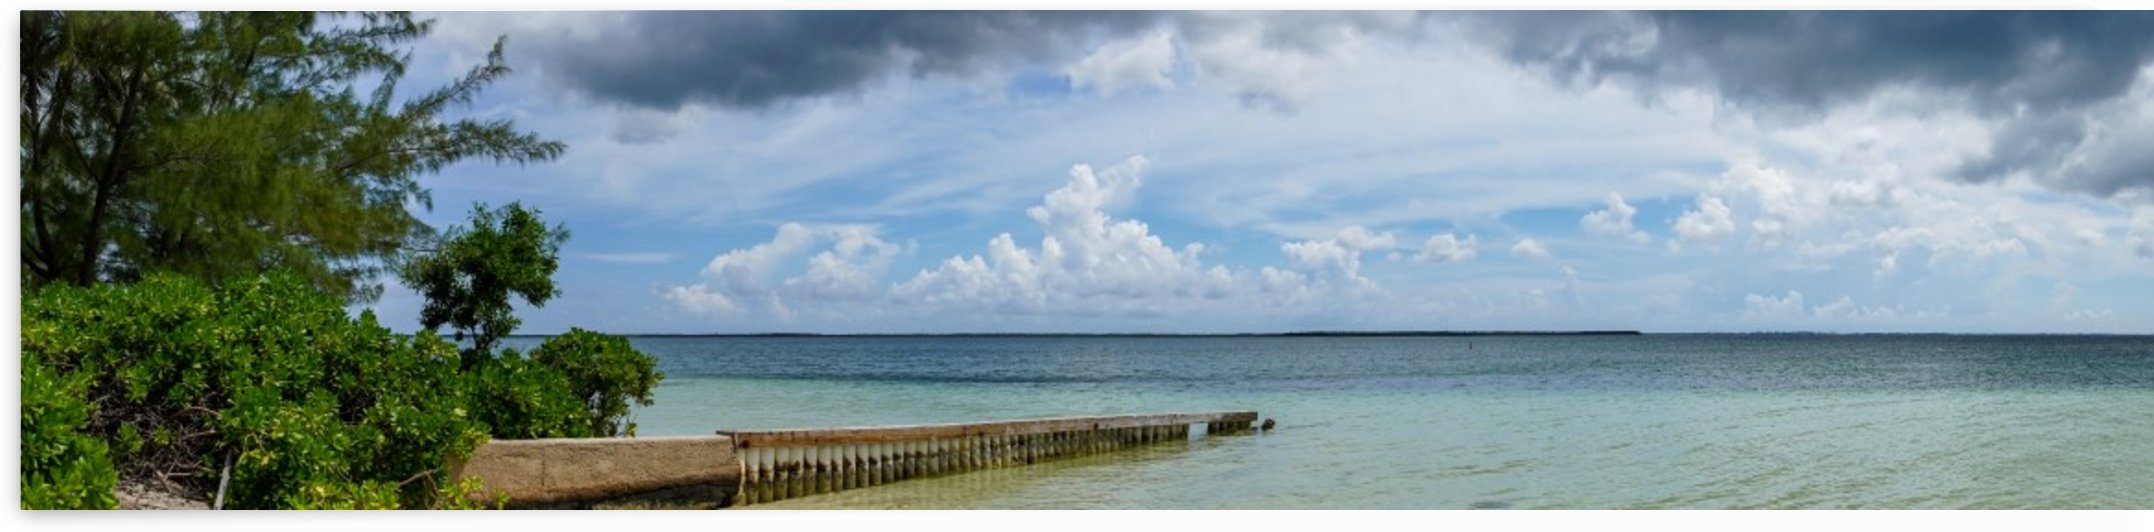 View of Georgetown from Starfish Point in Grand Cayman 2 by tommikee